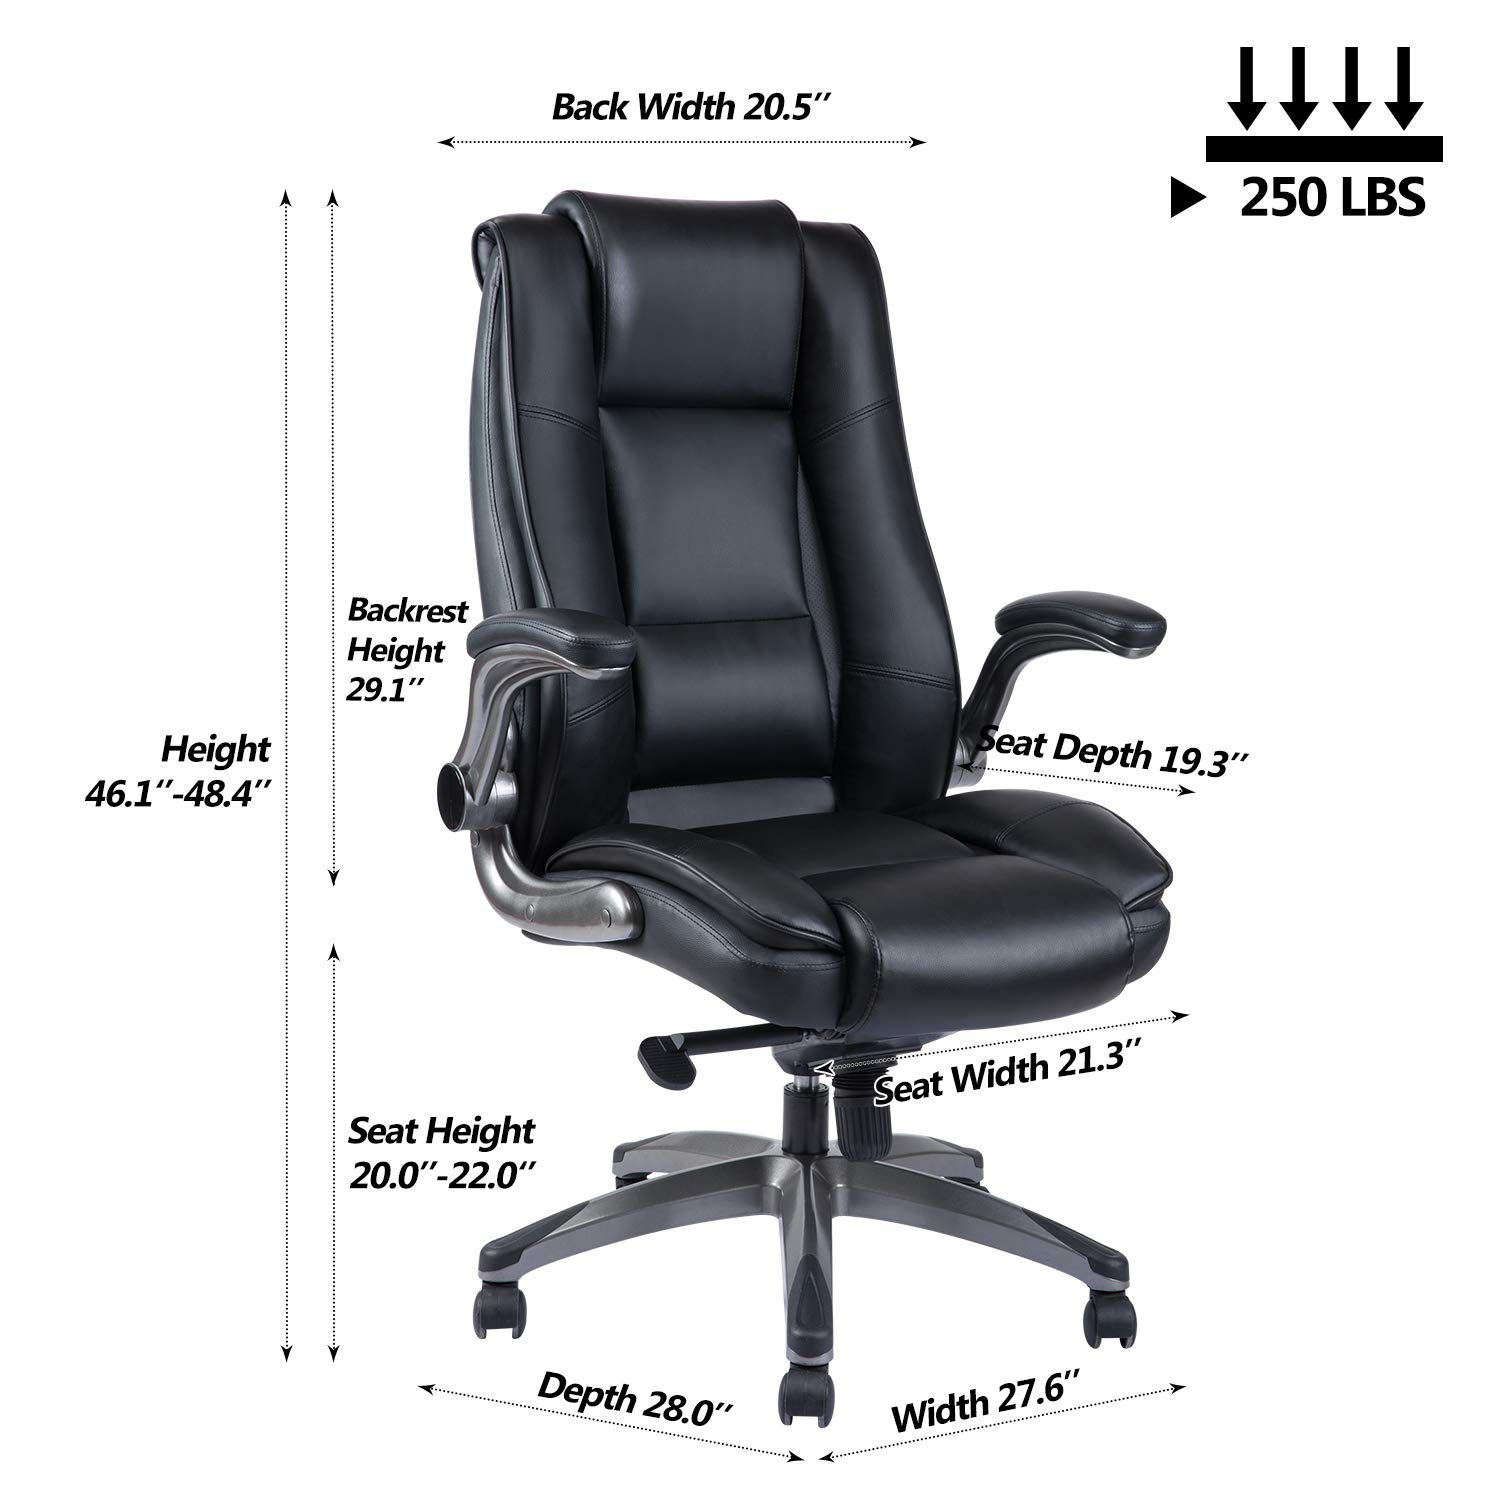 VANBOW High Back Leather Office Chair - Adjustable Tilt Angle and Flip-up Arms Executive Computer Desk Chair, Thick Padding for Comfort and Ergonomic Design for Lumbar Support, Black by VANBOW (Image #6)